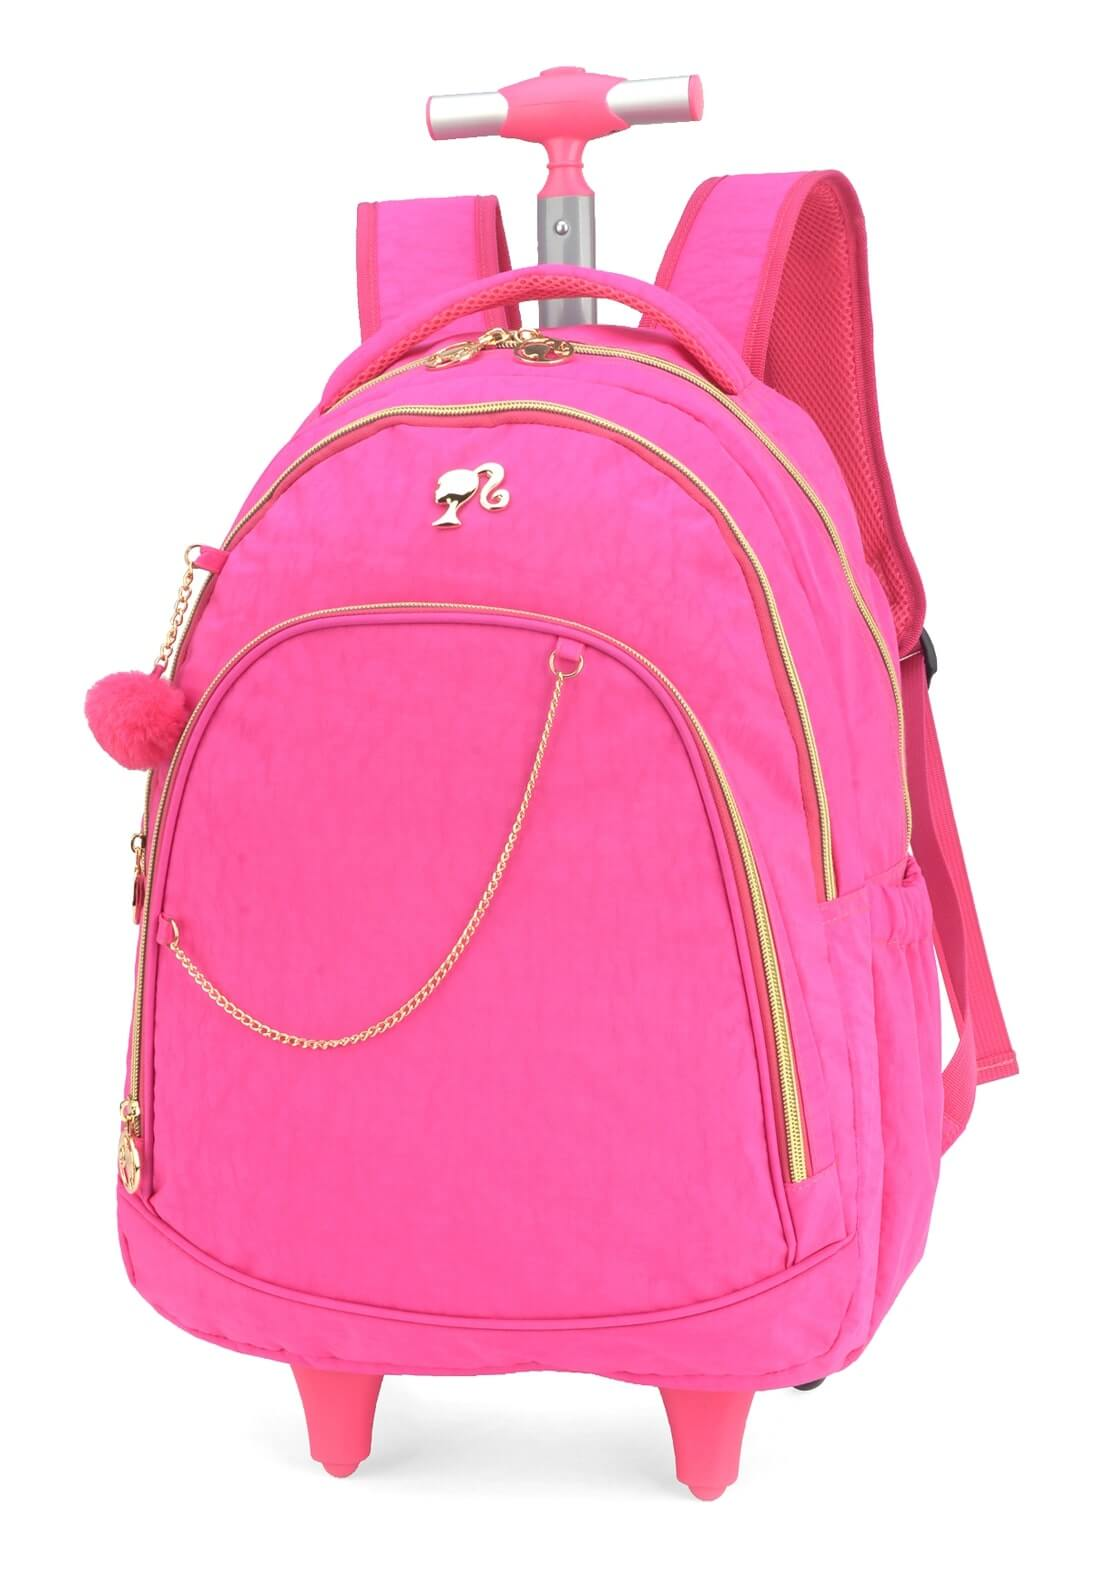 Mochila Rodinhas Barbie Mochilete Notebook Barbie Original R